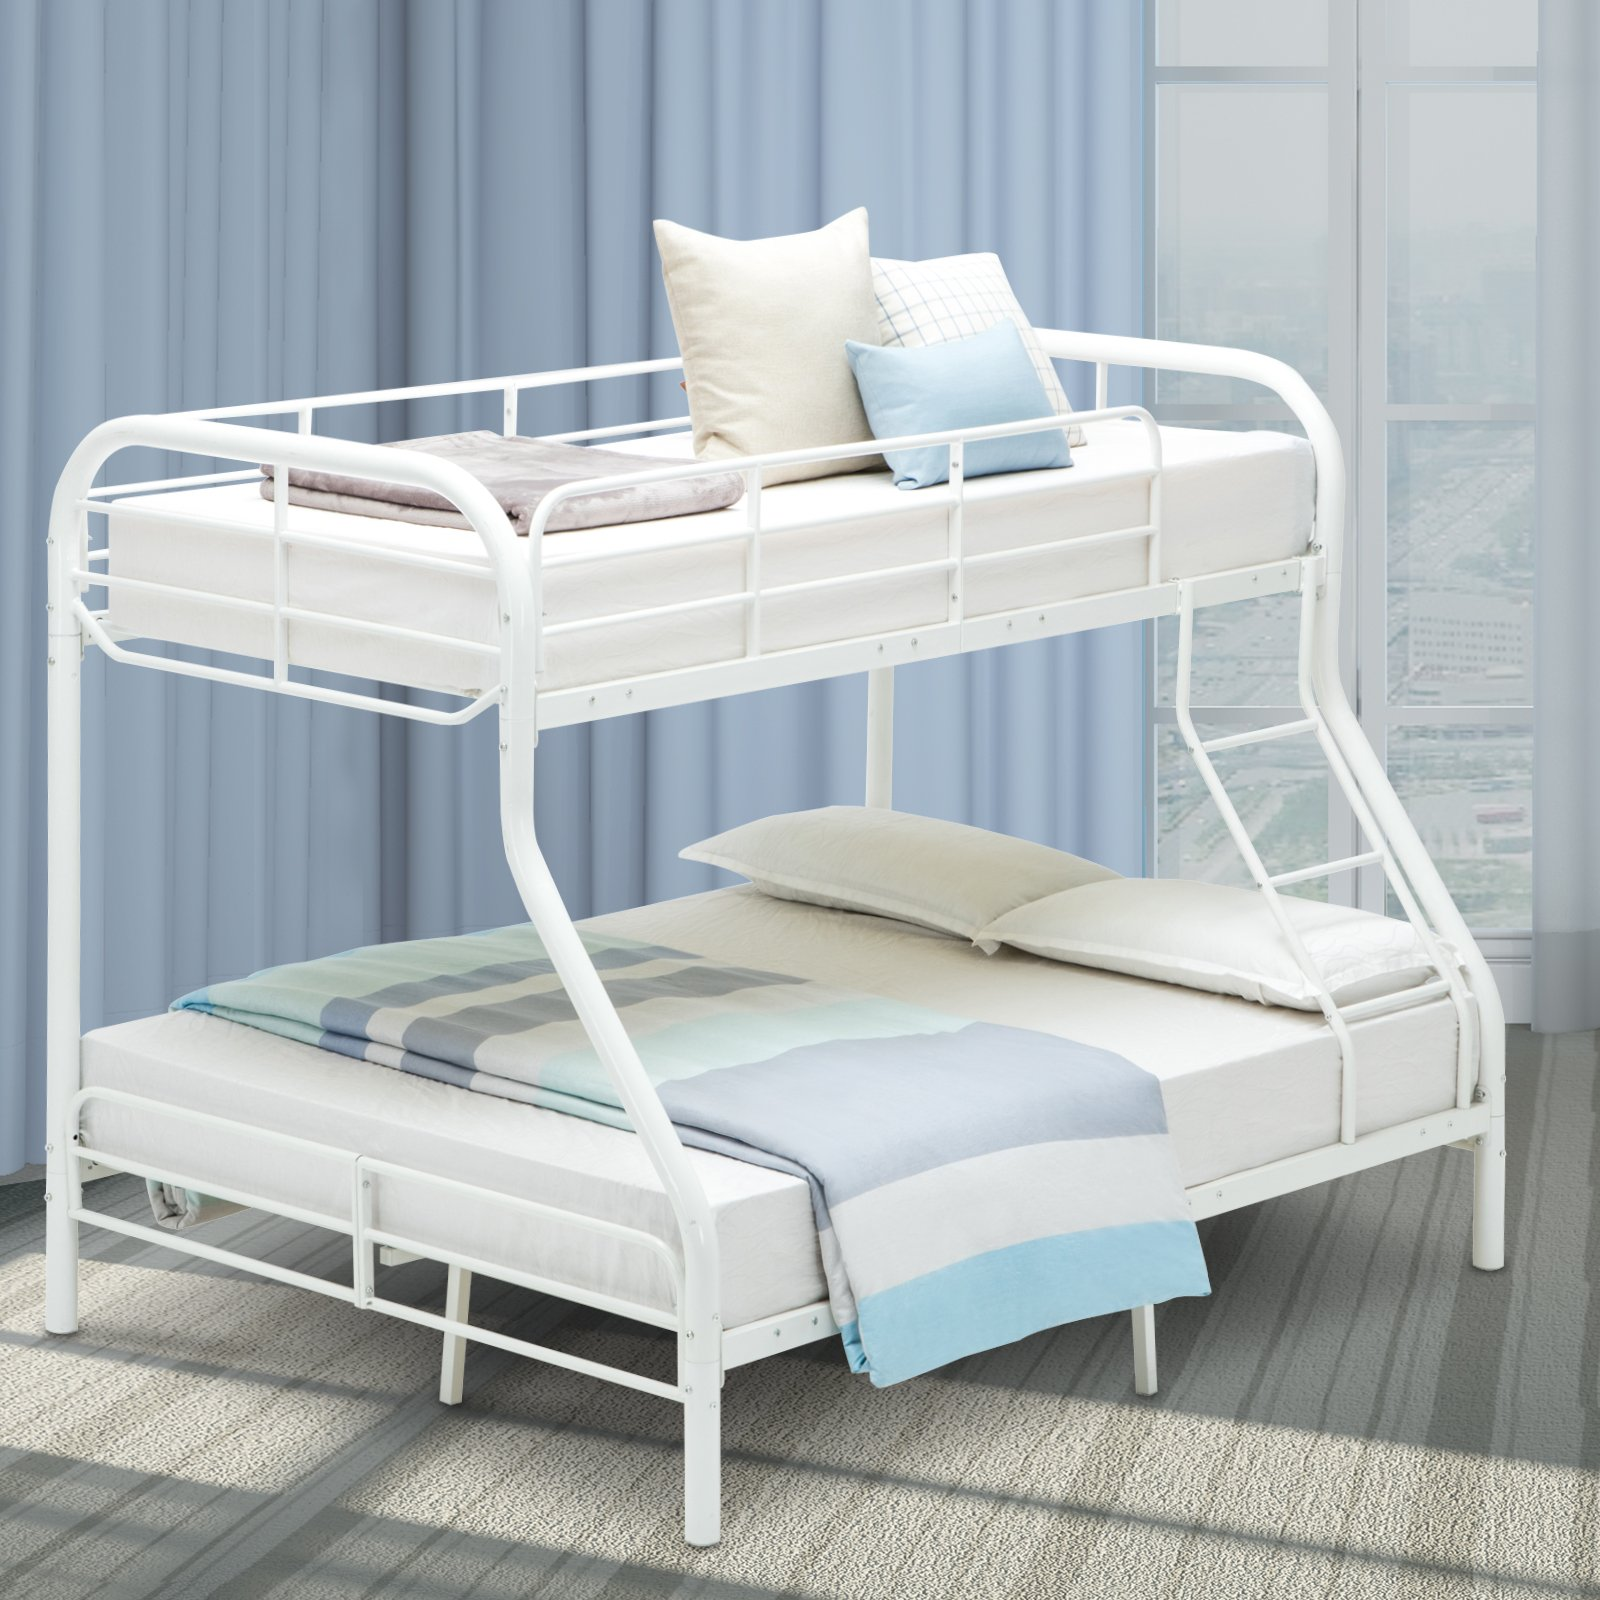 LAGRIMA Twin Over Full Metal Sturdy Bunk Bed Frame, with Inclined Ladder, Safety Rails for Kids Teens Adult, Space-Saving Design - White